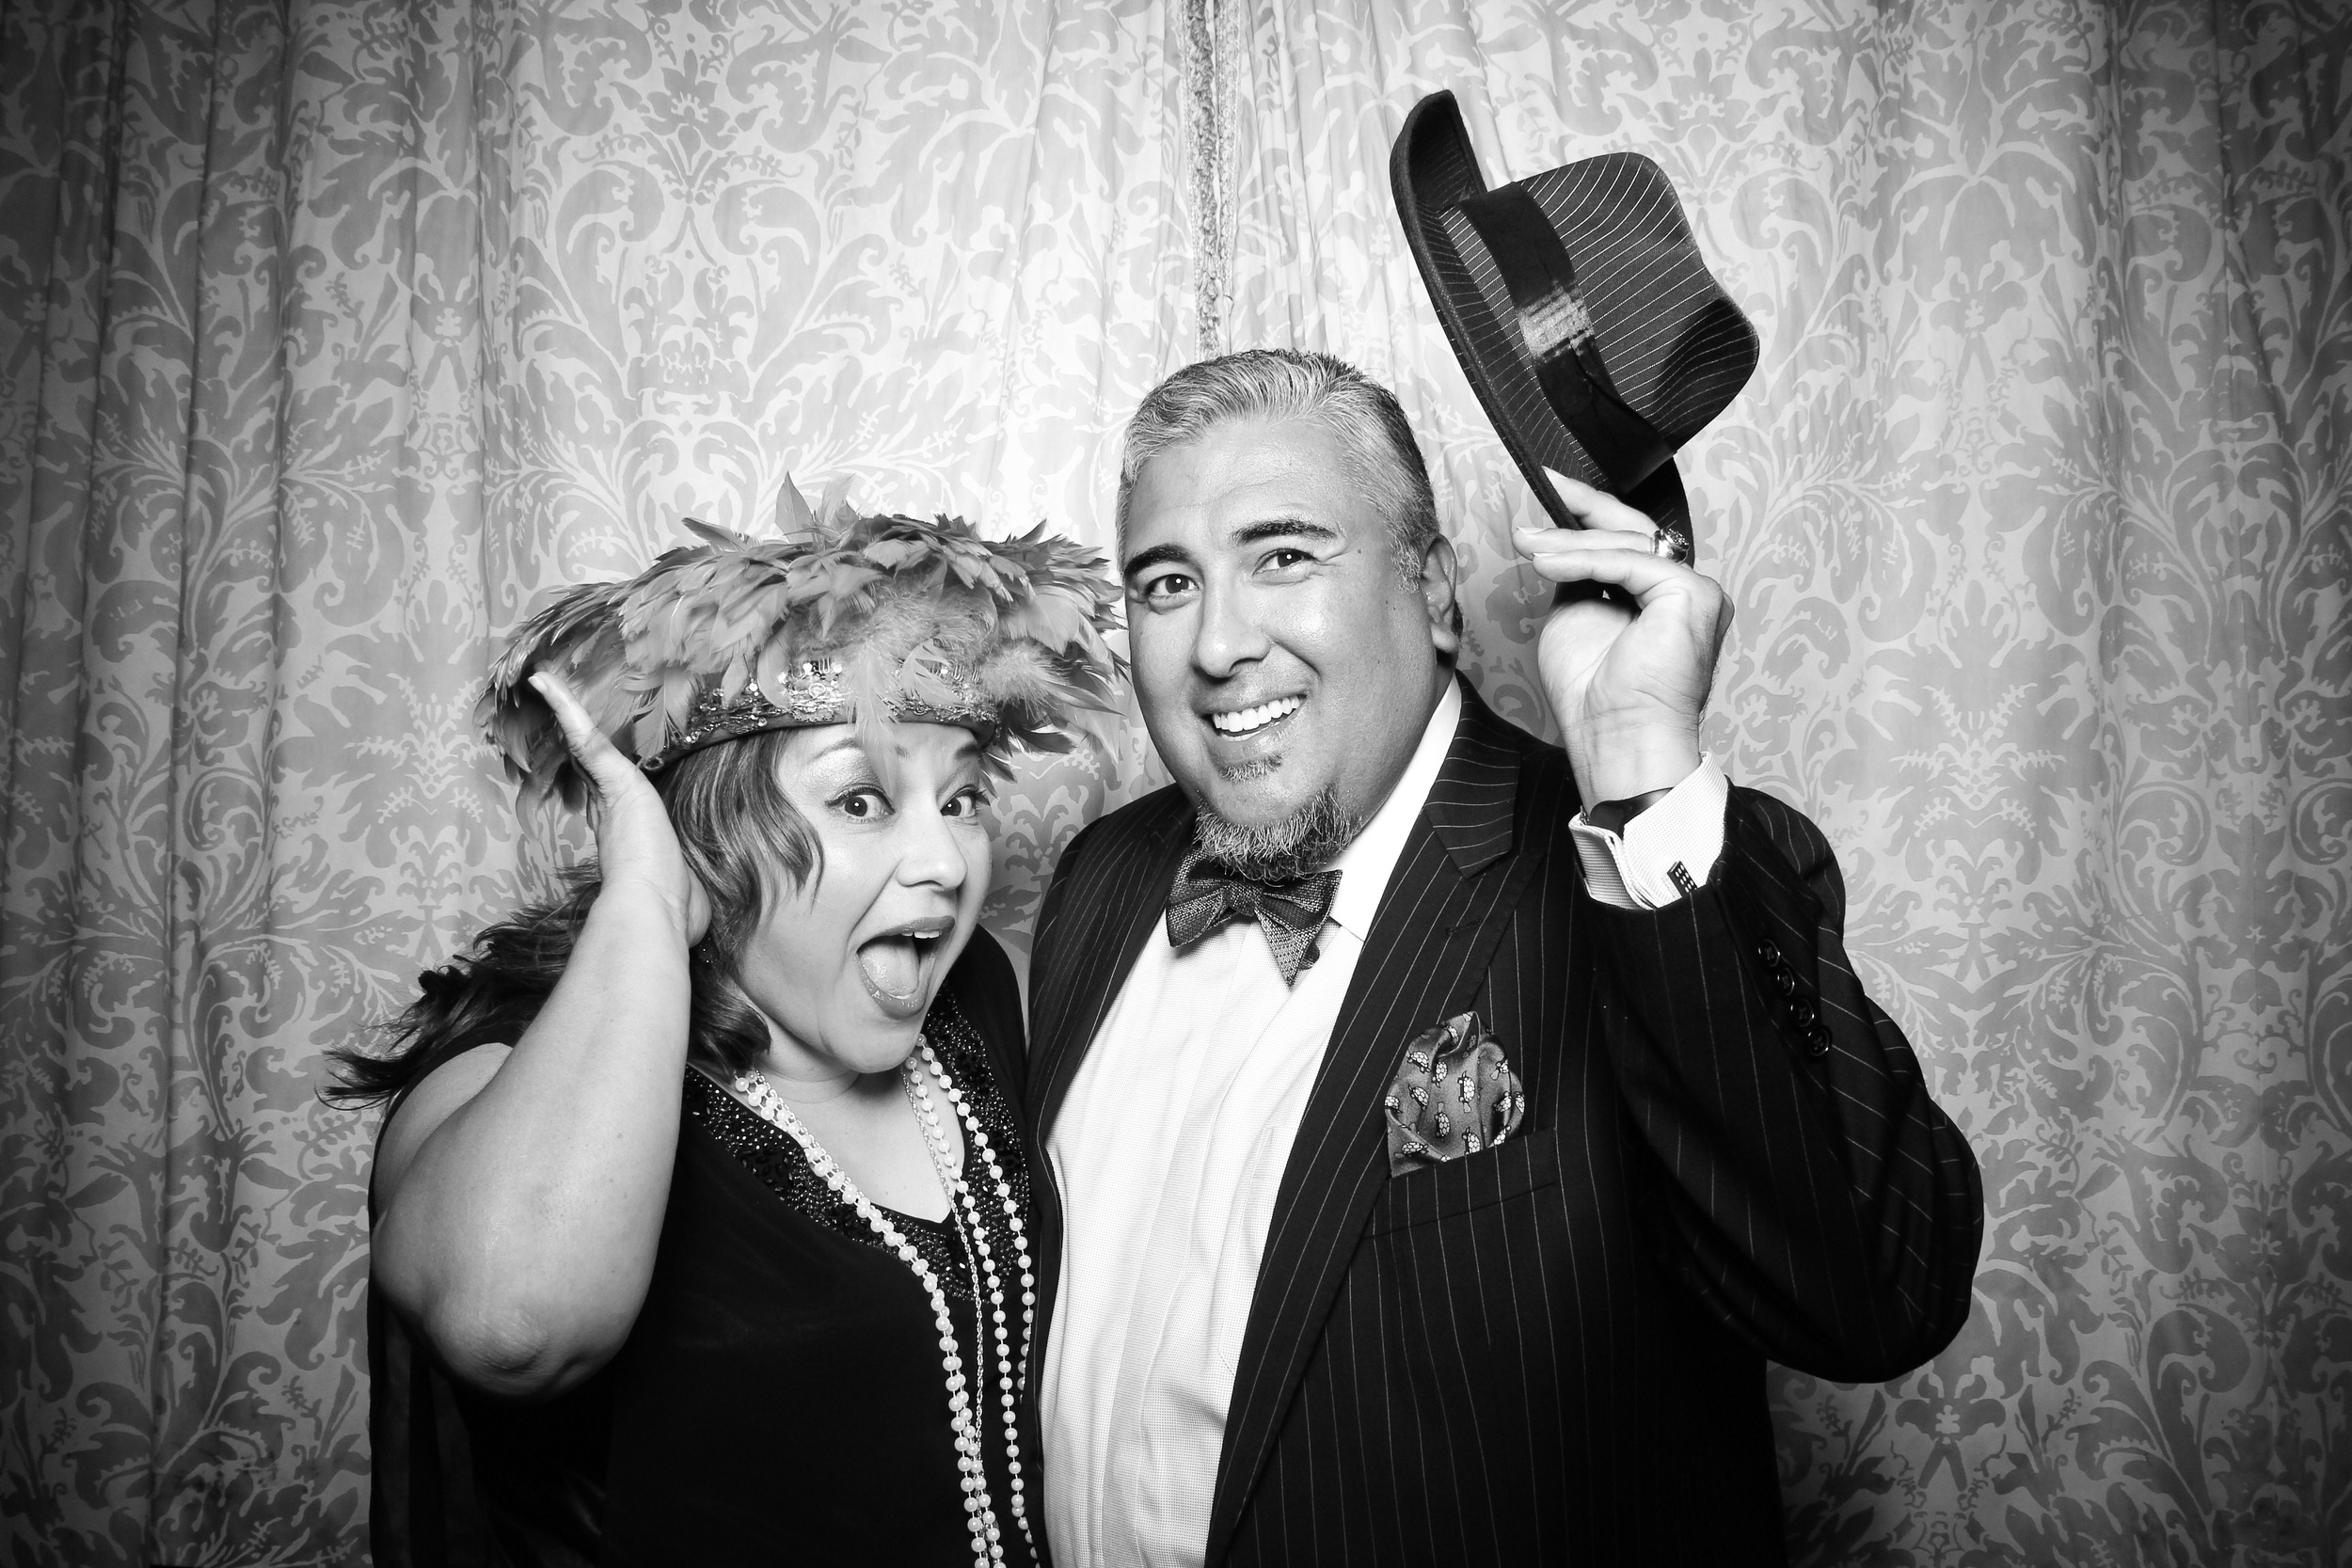 A couple takes a fun photo booth portrait with Great Gatsby style event props!